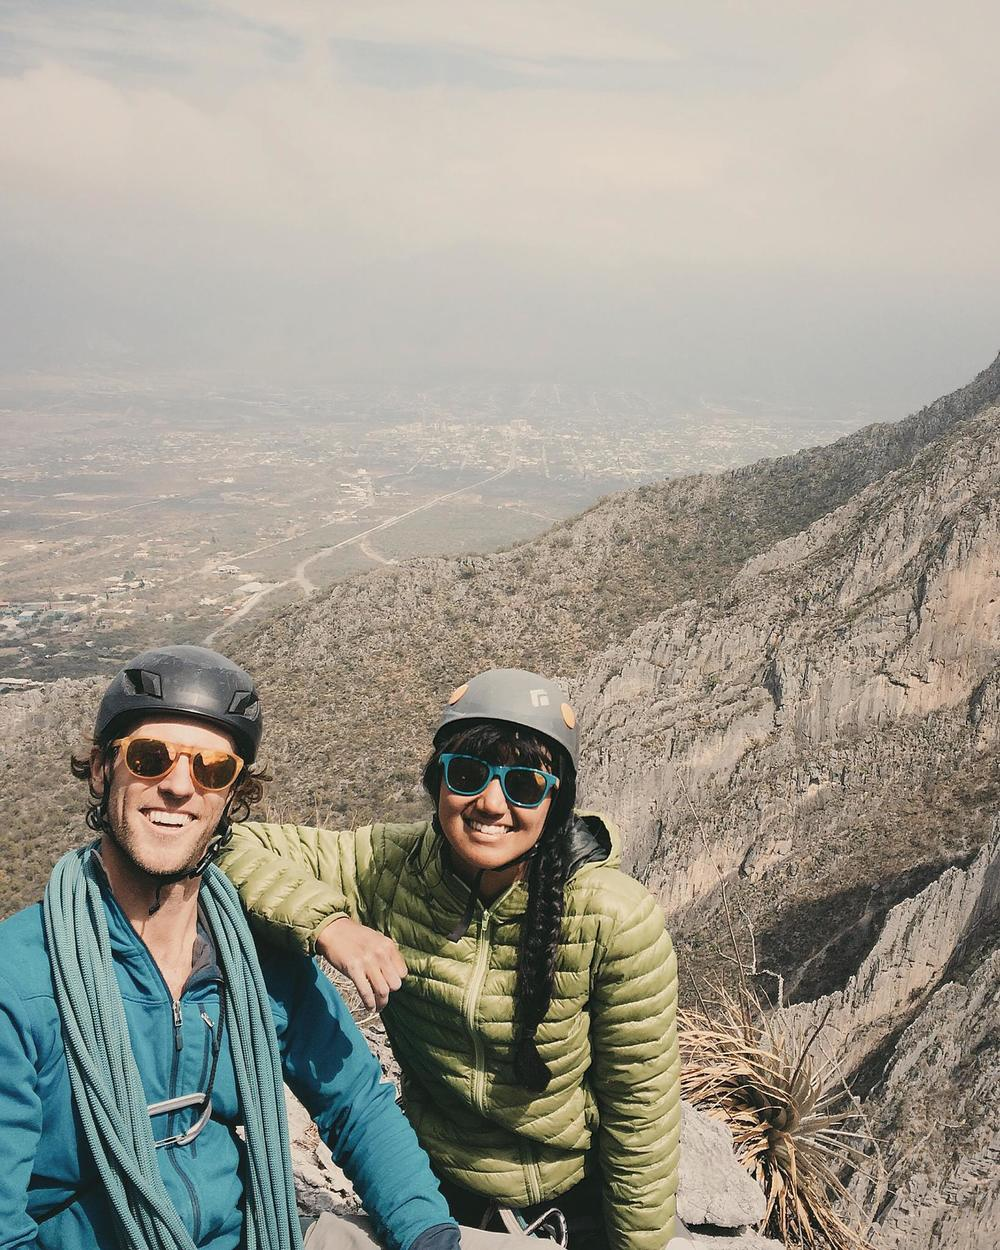 Bryan and me on the summit of Black Cat Bone (10d) with Hidalgo in the background.